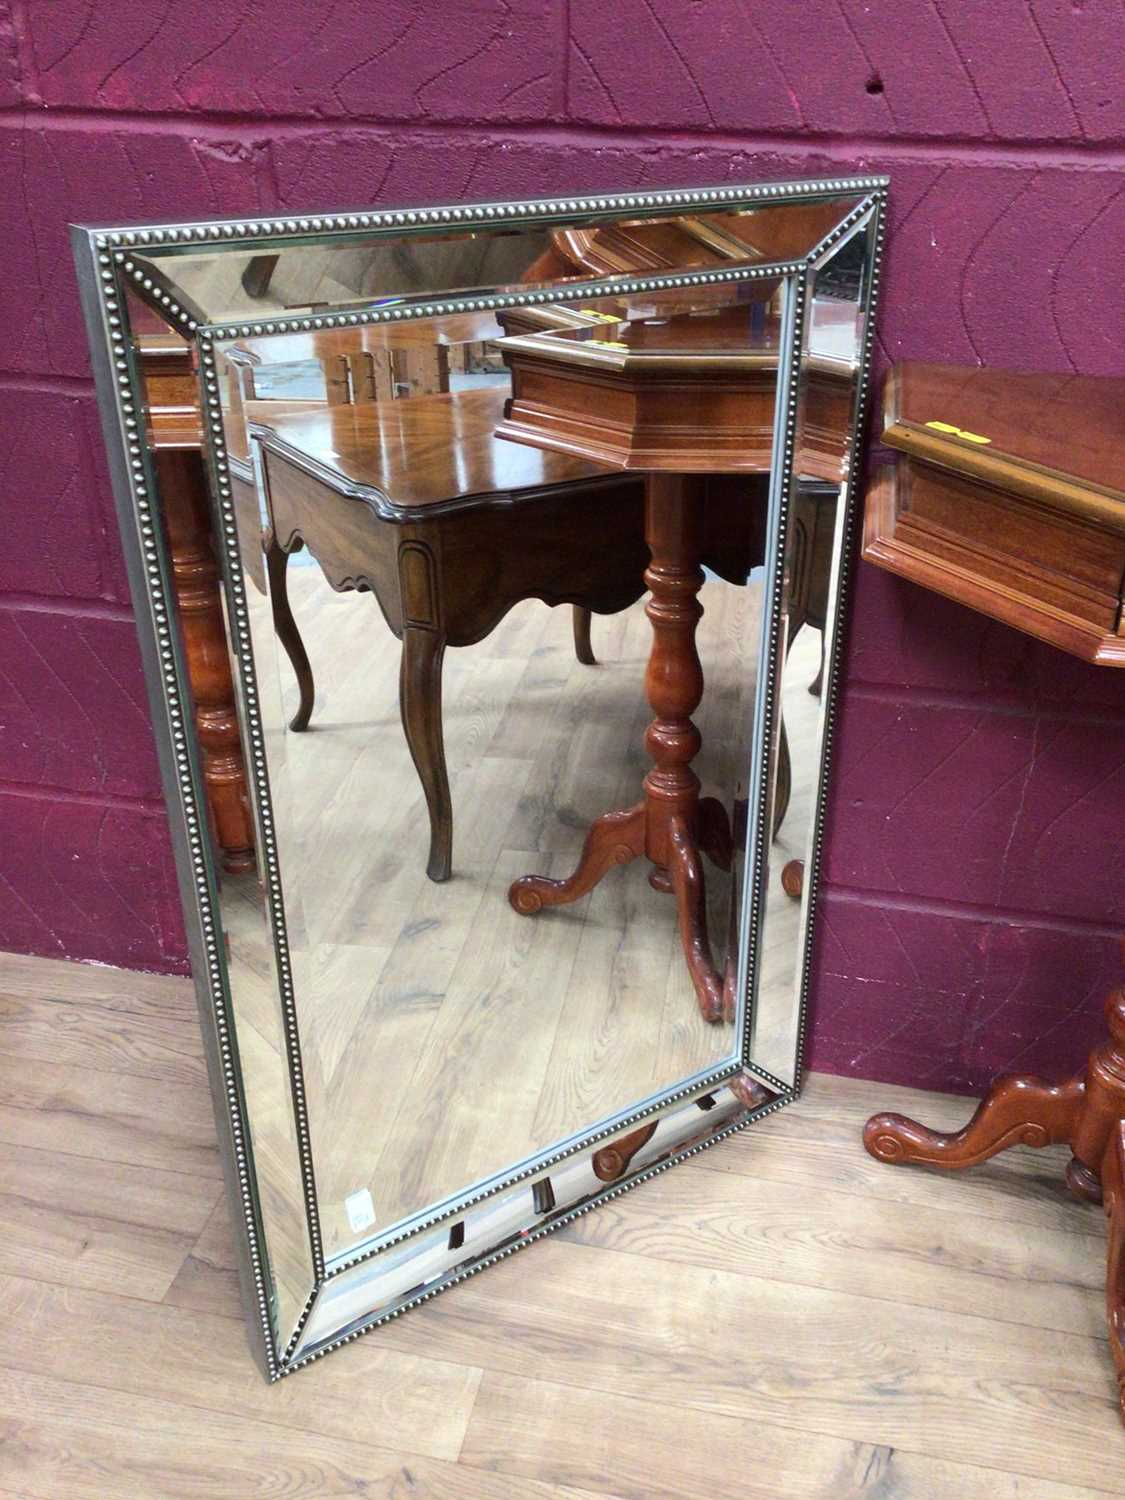 Italian inlaid marquetry table, low coffee table of square form with draw and a mirror (3) - Image 2 of 5